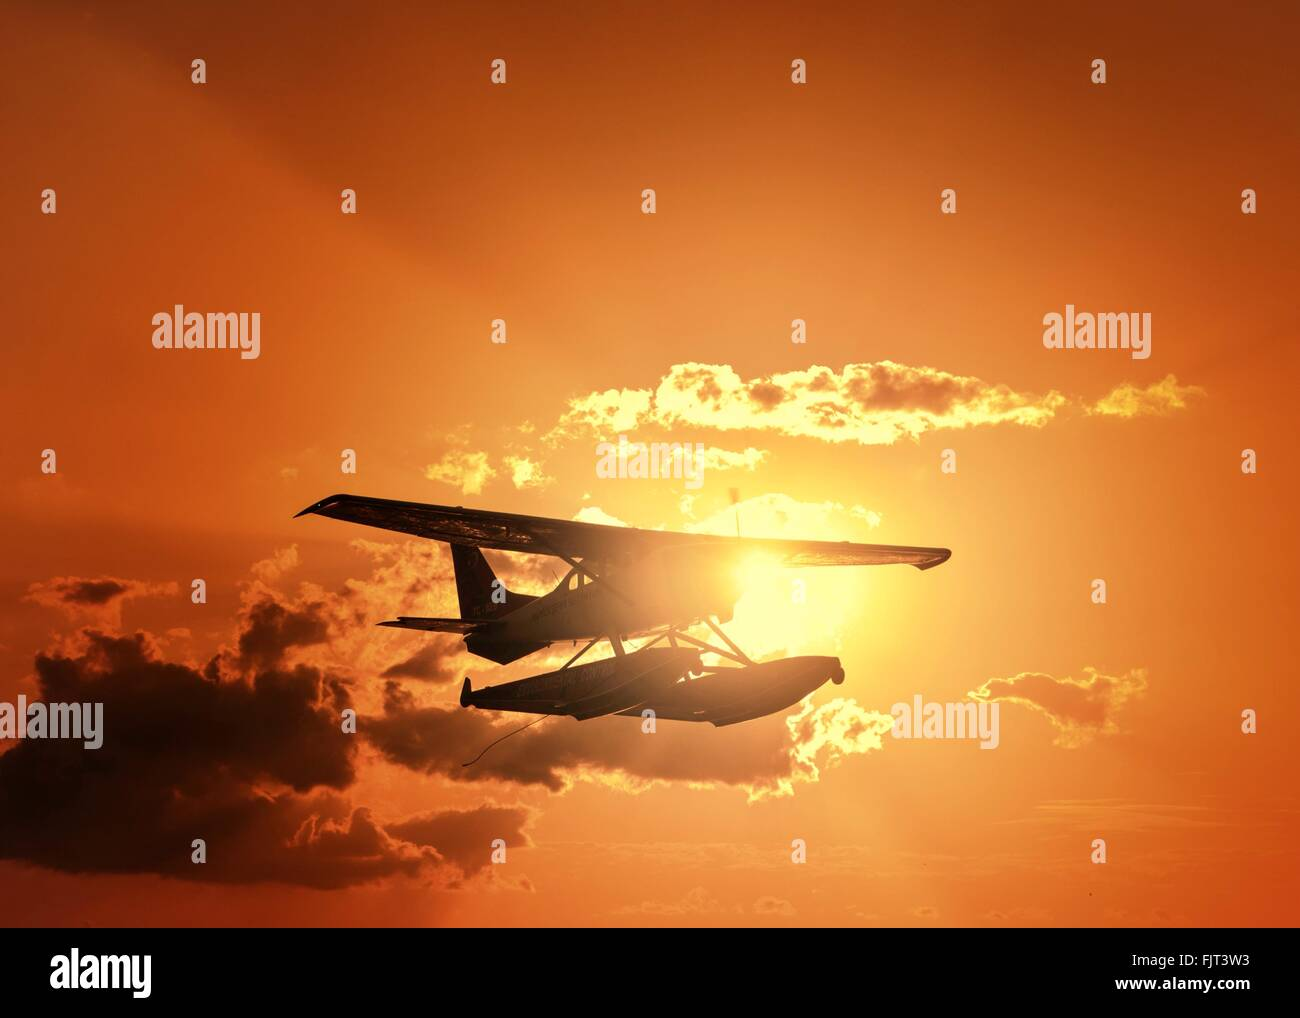 Low Angle View Of Back Allumé Seaplane Photo Stock